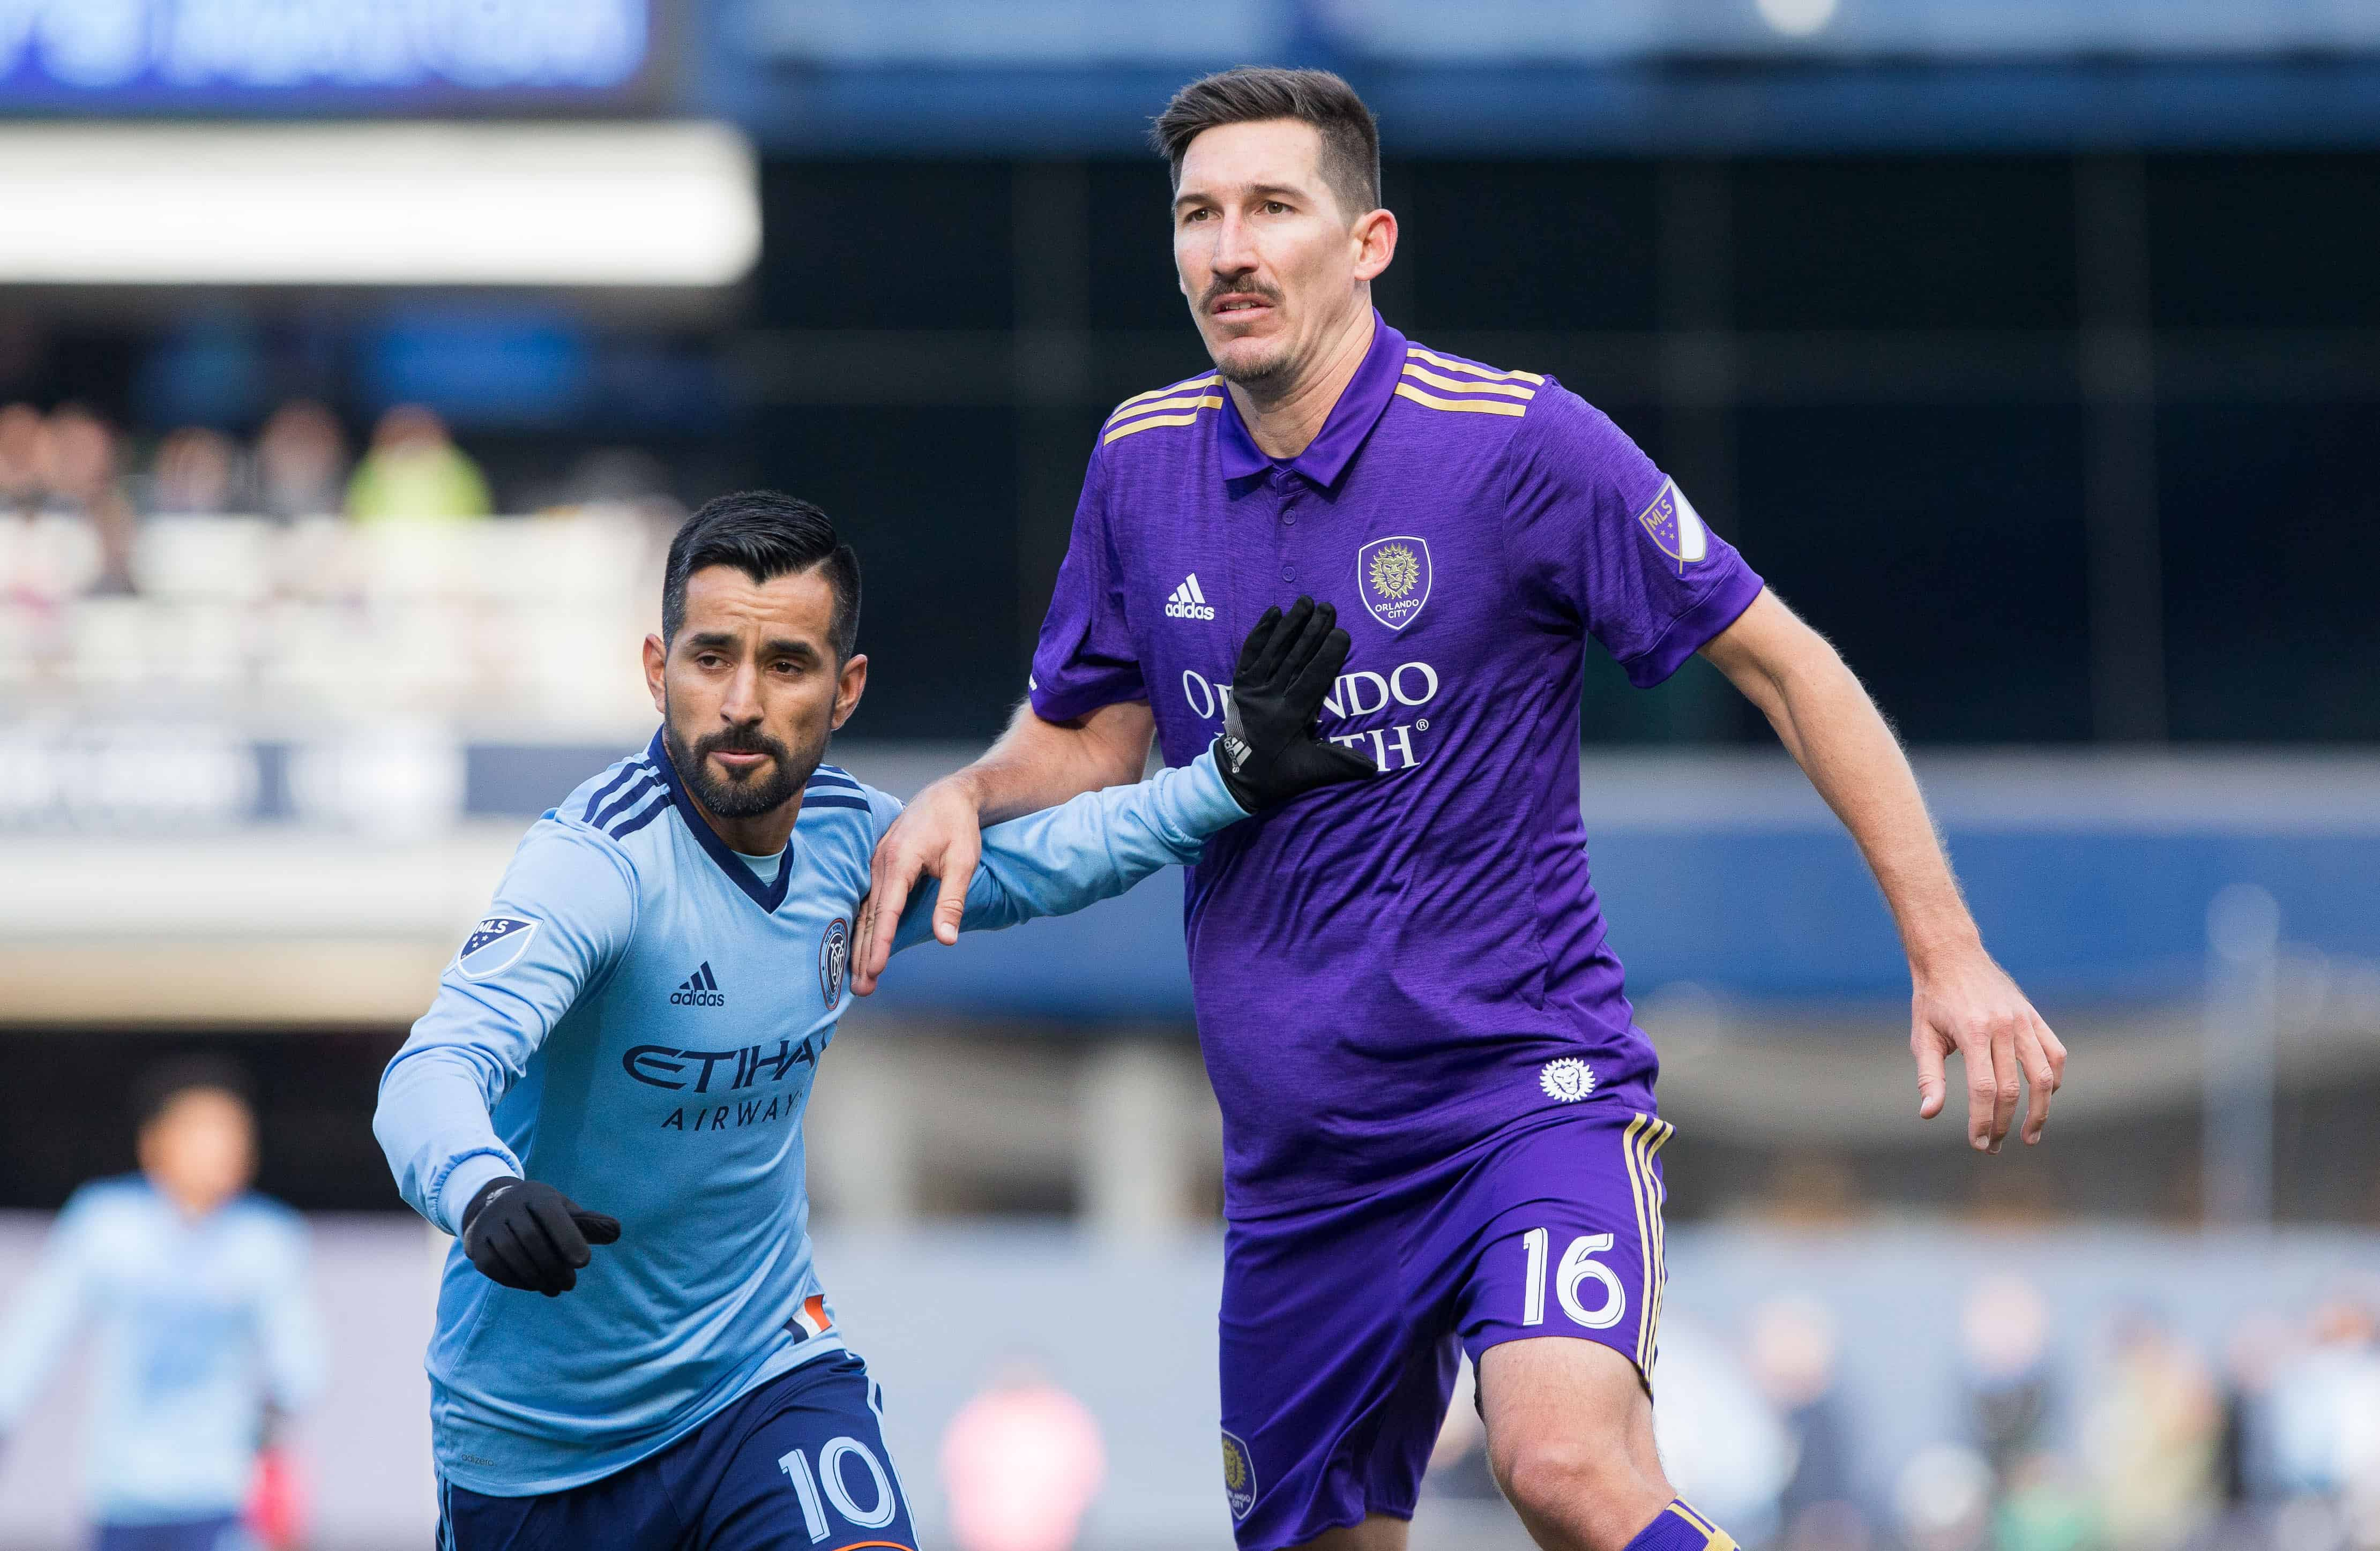 Orlando City v New York City FC - MLS